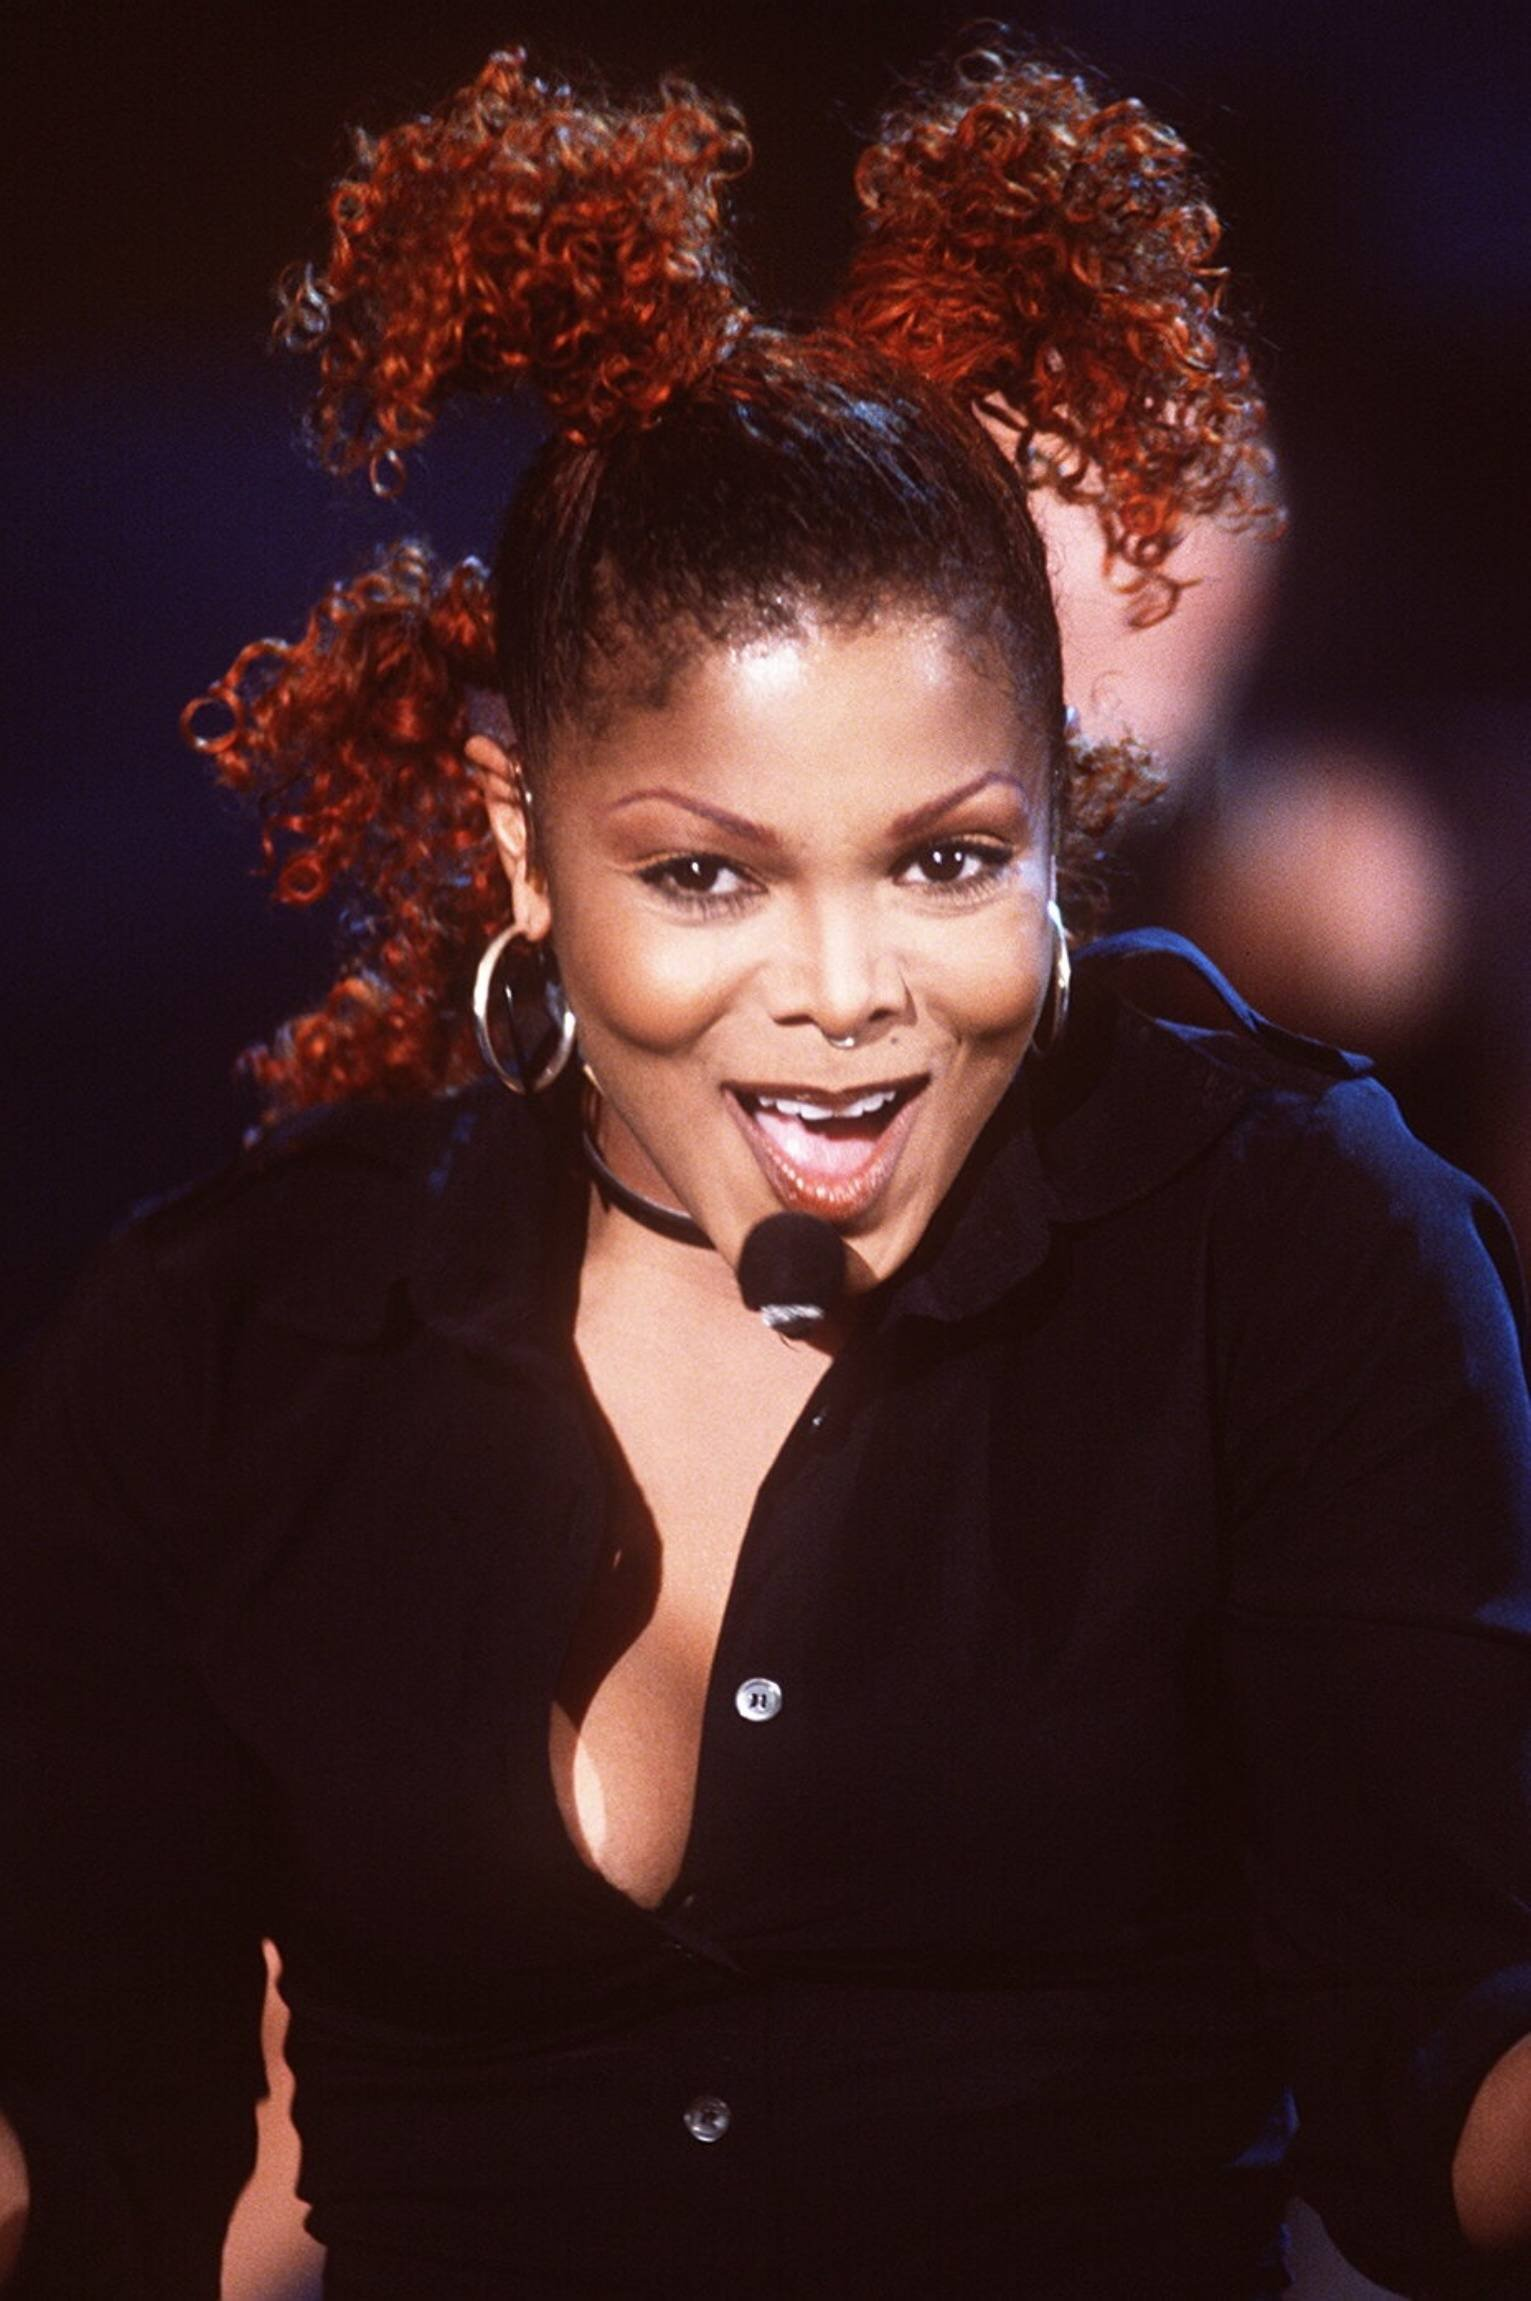 a biography of janet jackson a famous american singer Janet damita jo jackson (born may 16, 1966) is an american singer, songwriter, dancer, and actress a prominent figure in popular culture , she is known for sonically innovative, socially conscious and sexually provocative records, and elaborate stage shows.